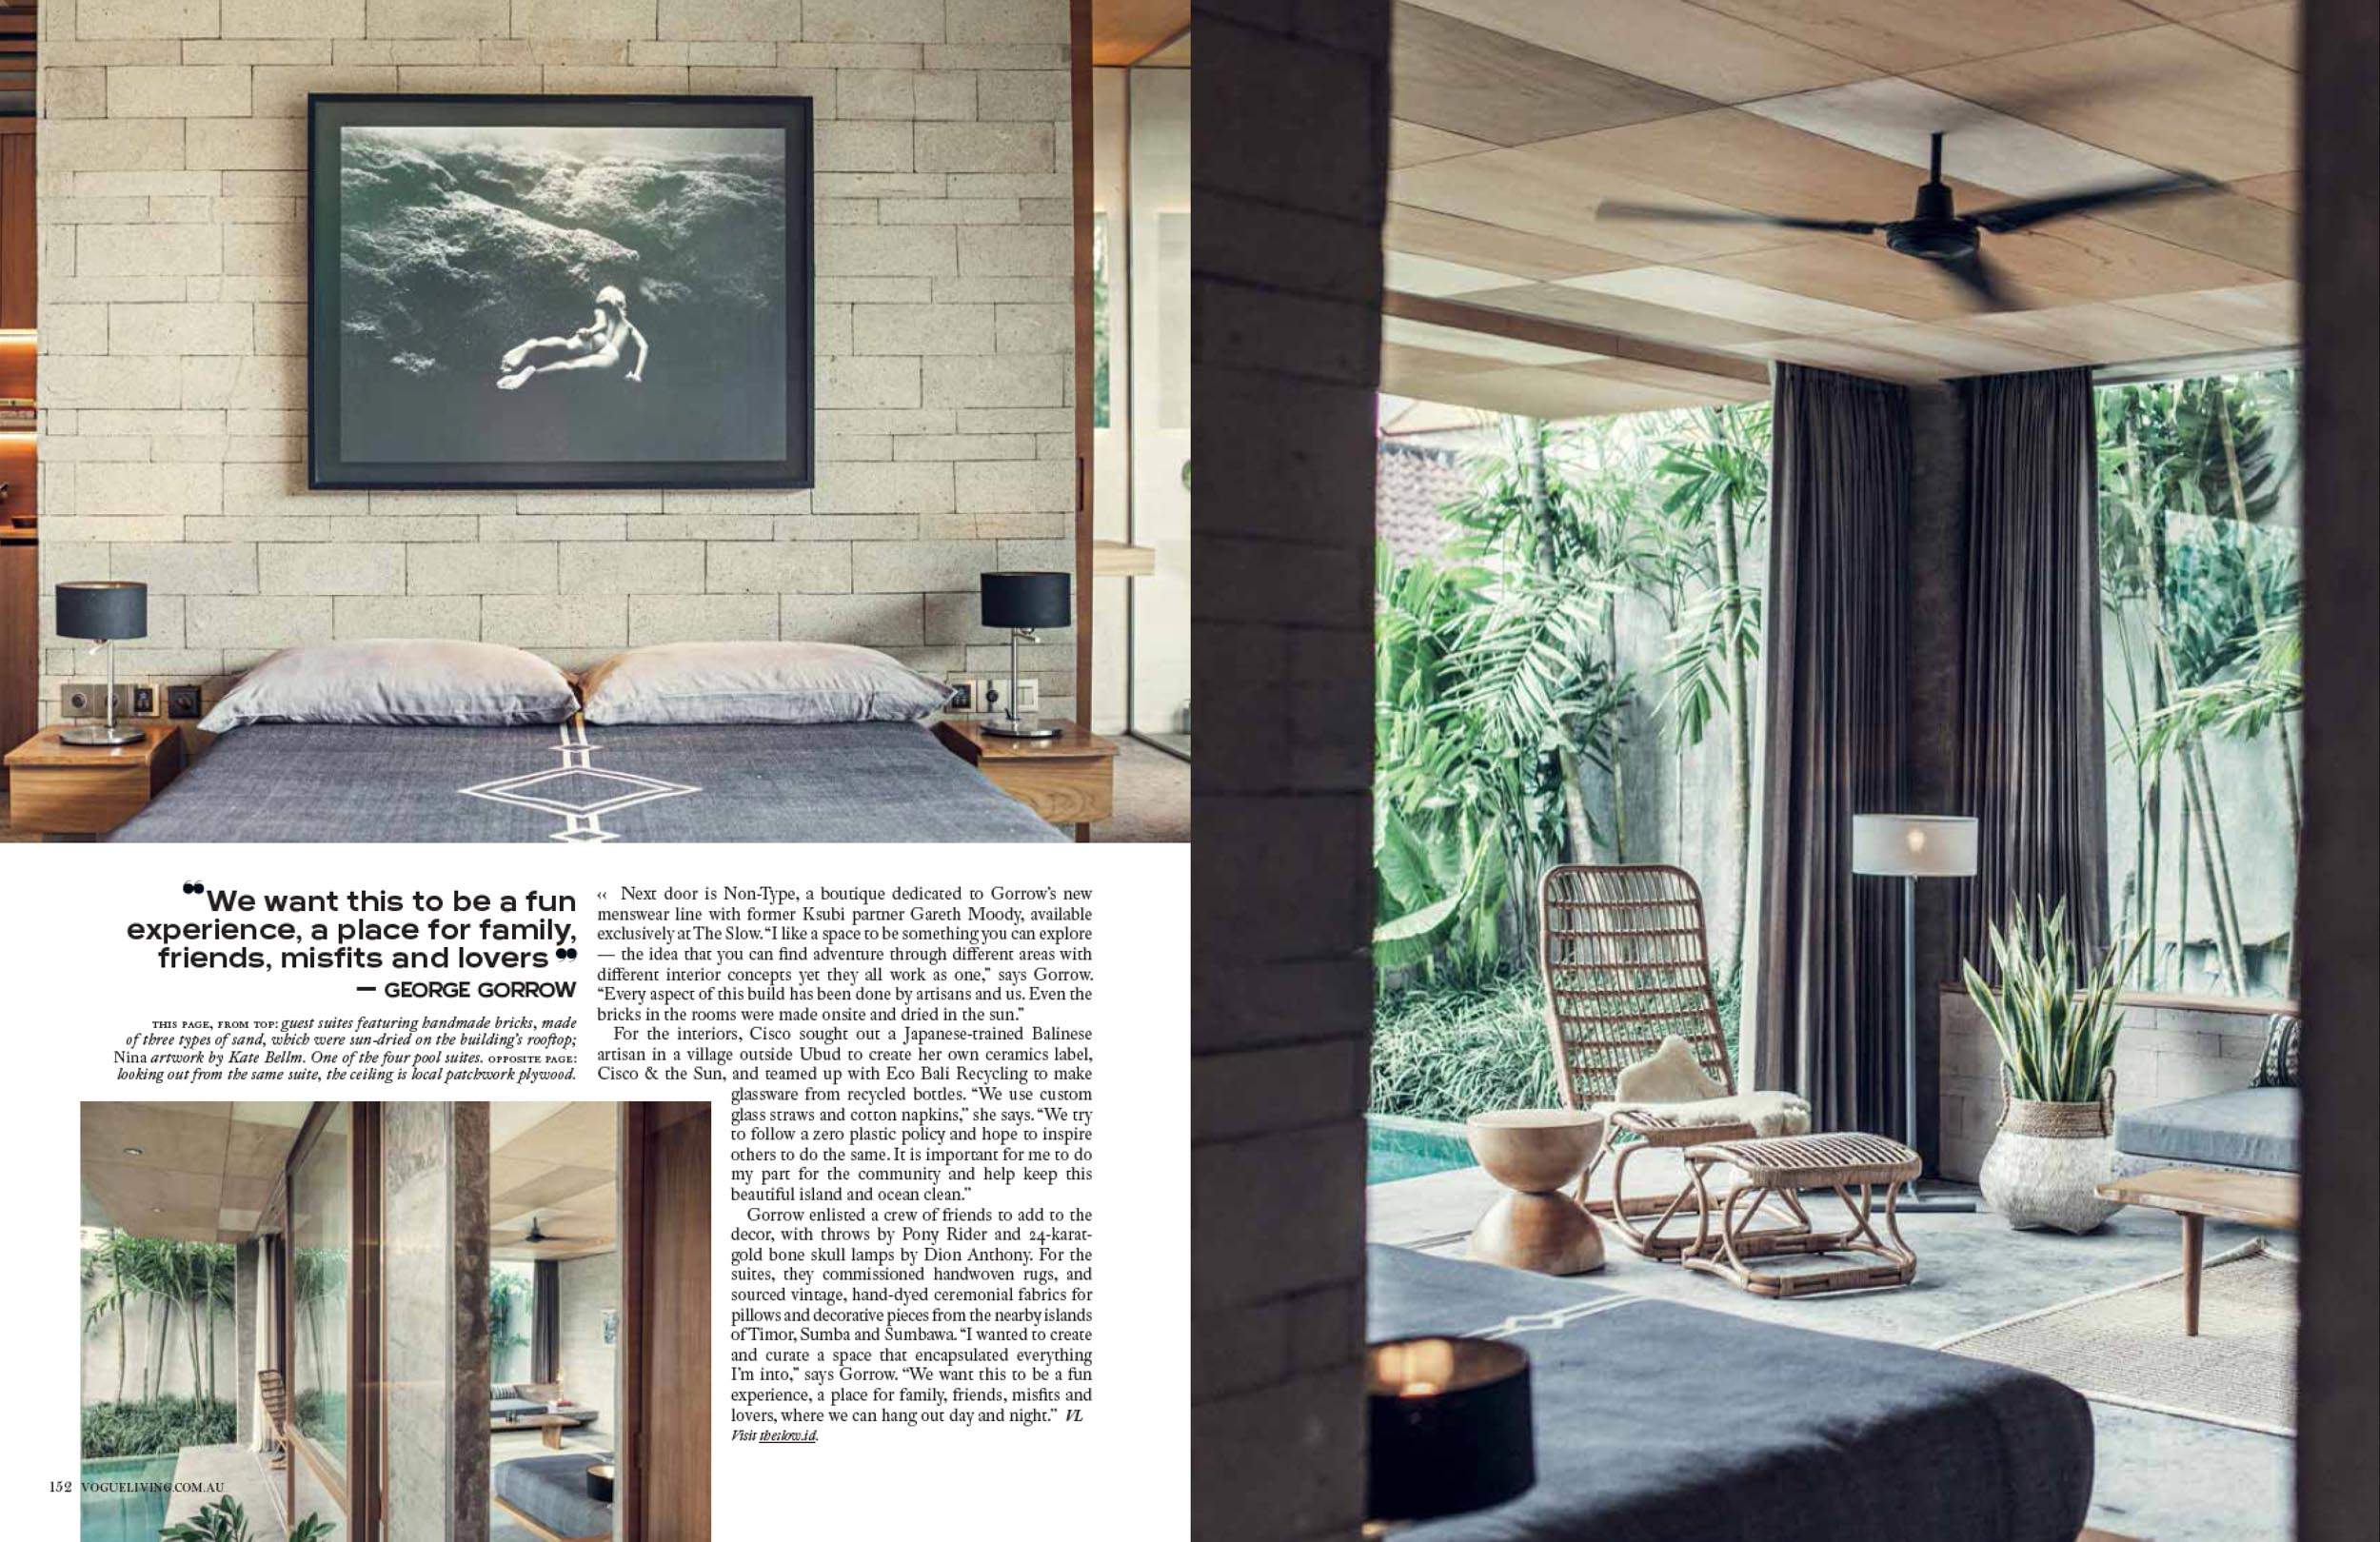 vogue-living-australia-natalie-shukur-tommaso-riva-george-gorrow-the-slow-bali-interiors (4 of 4).jpg